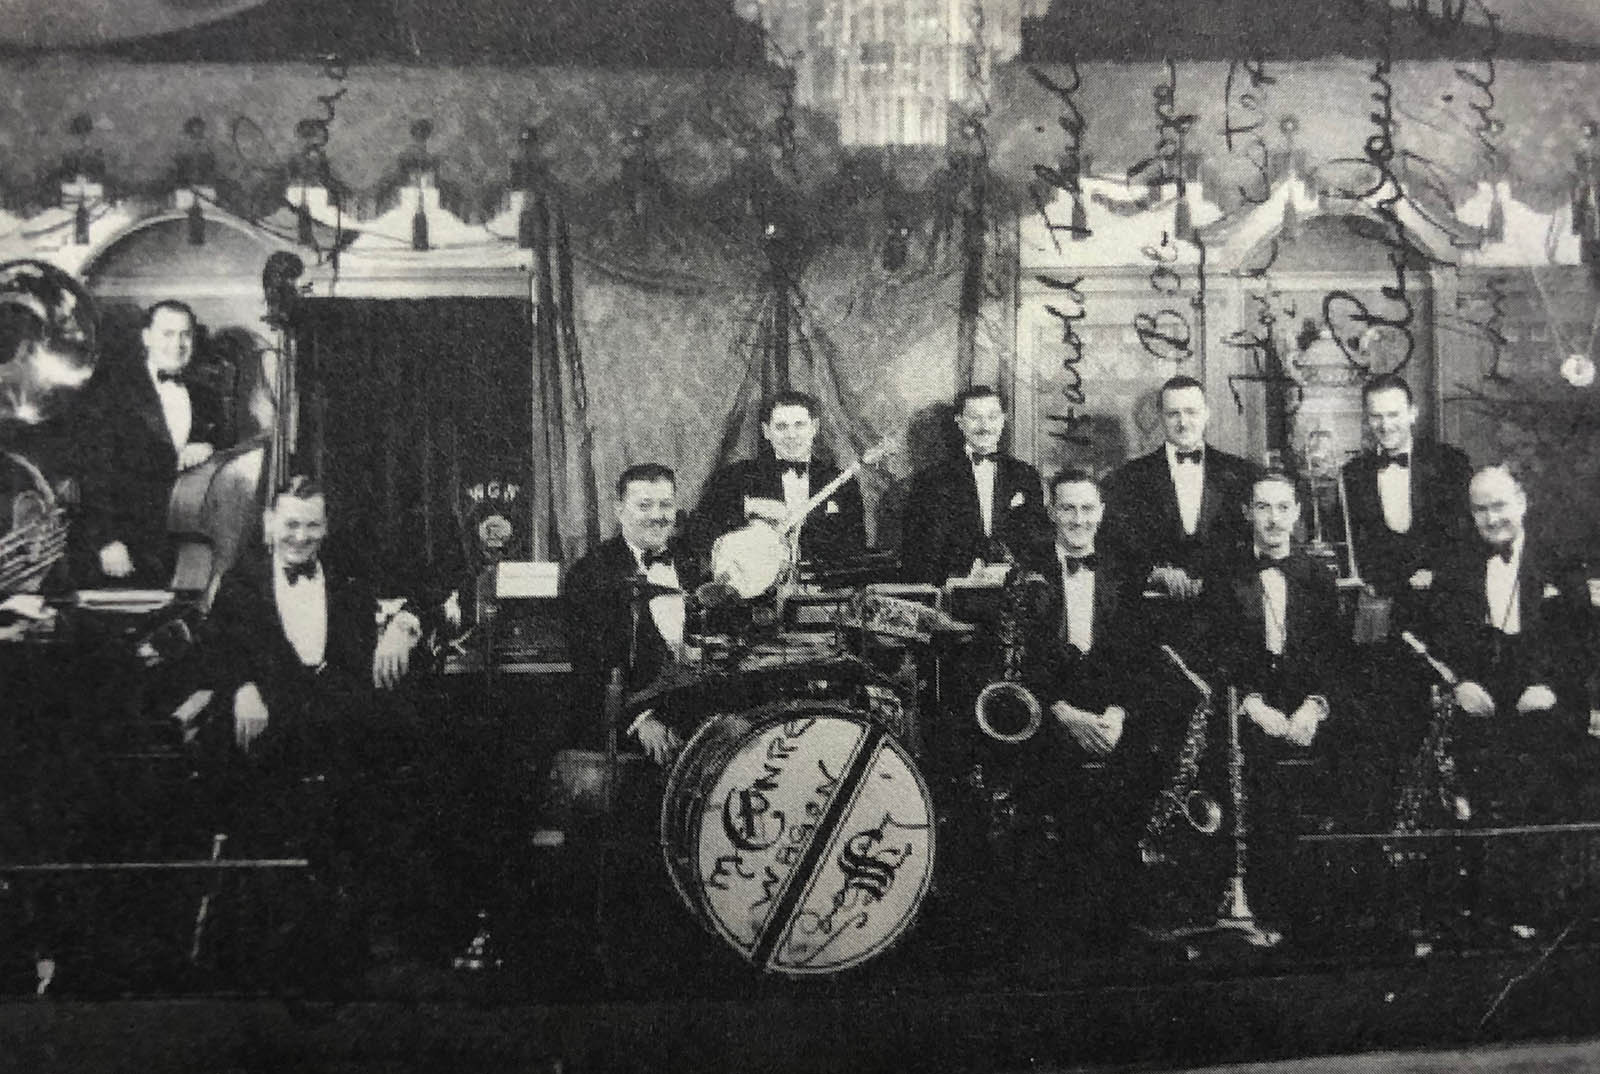 Coon-Sanders Orchestra